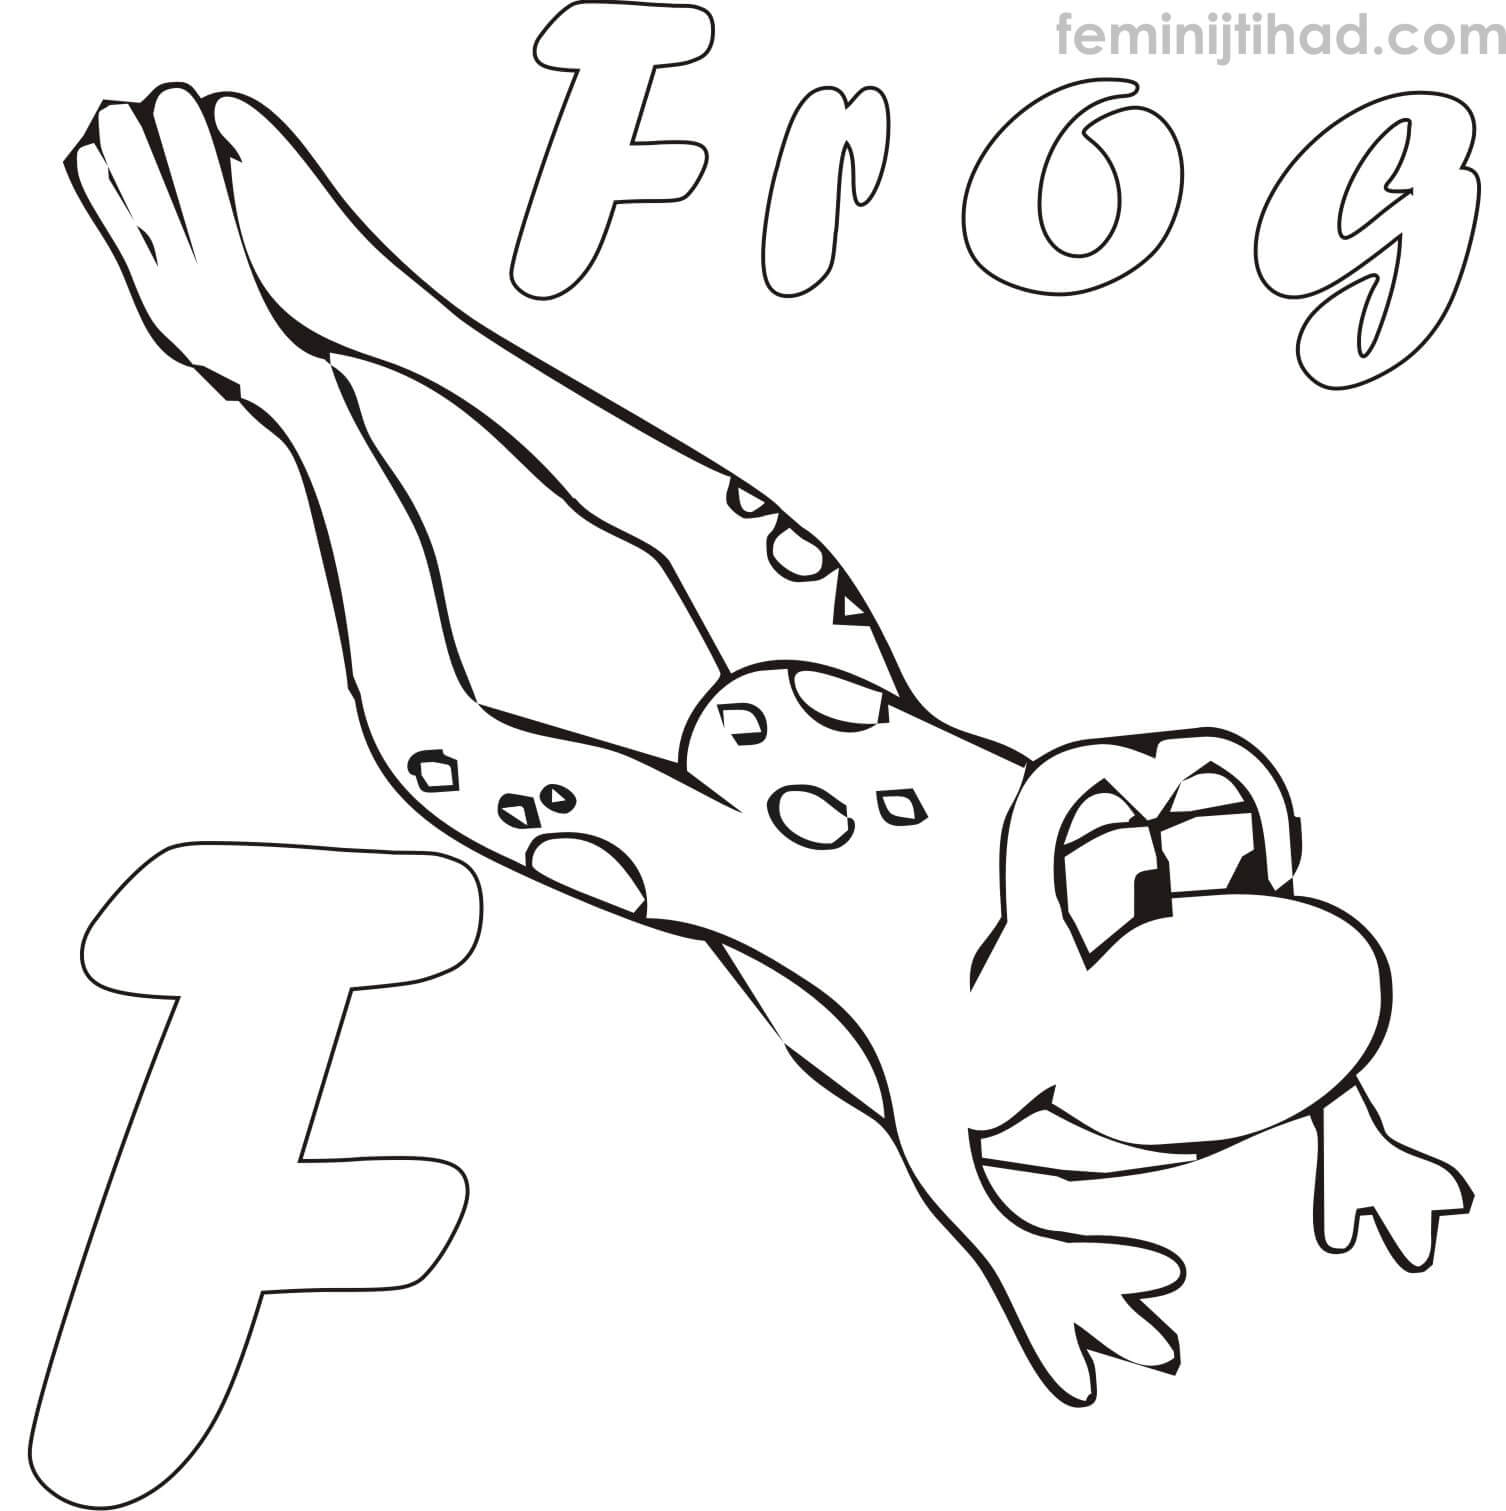 1506x1511 Frog Coloring Pages Collection Coloring Pages For Kids